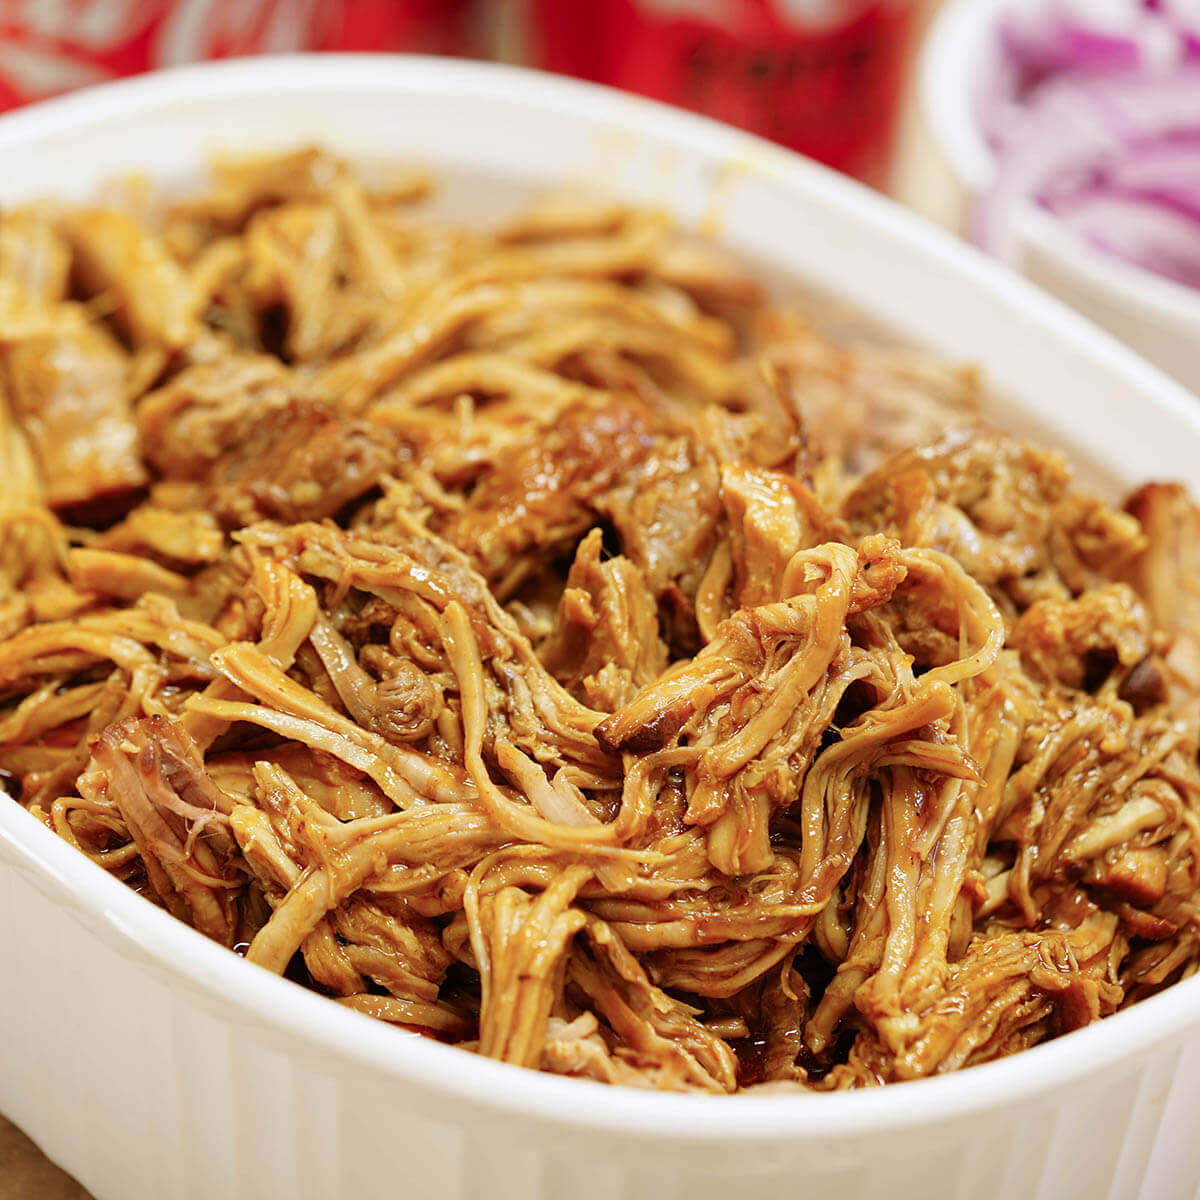 BBQ pulled pork that has been shredded in white bowl.